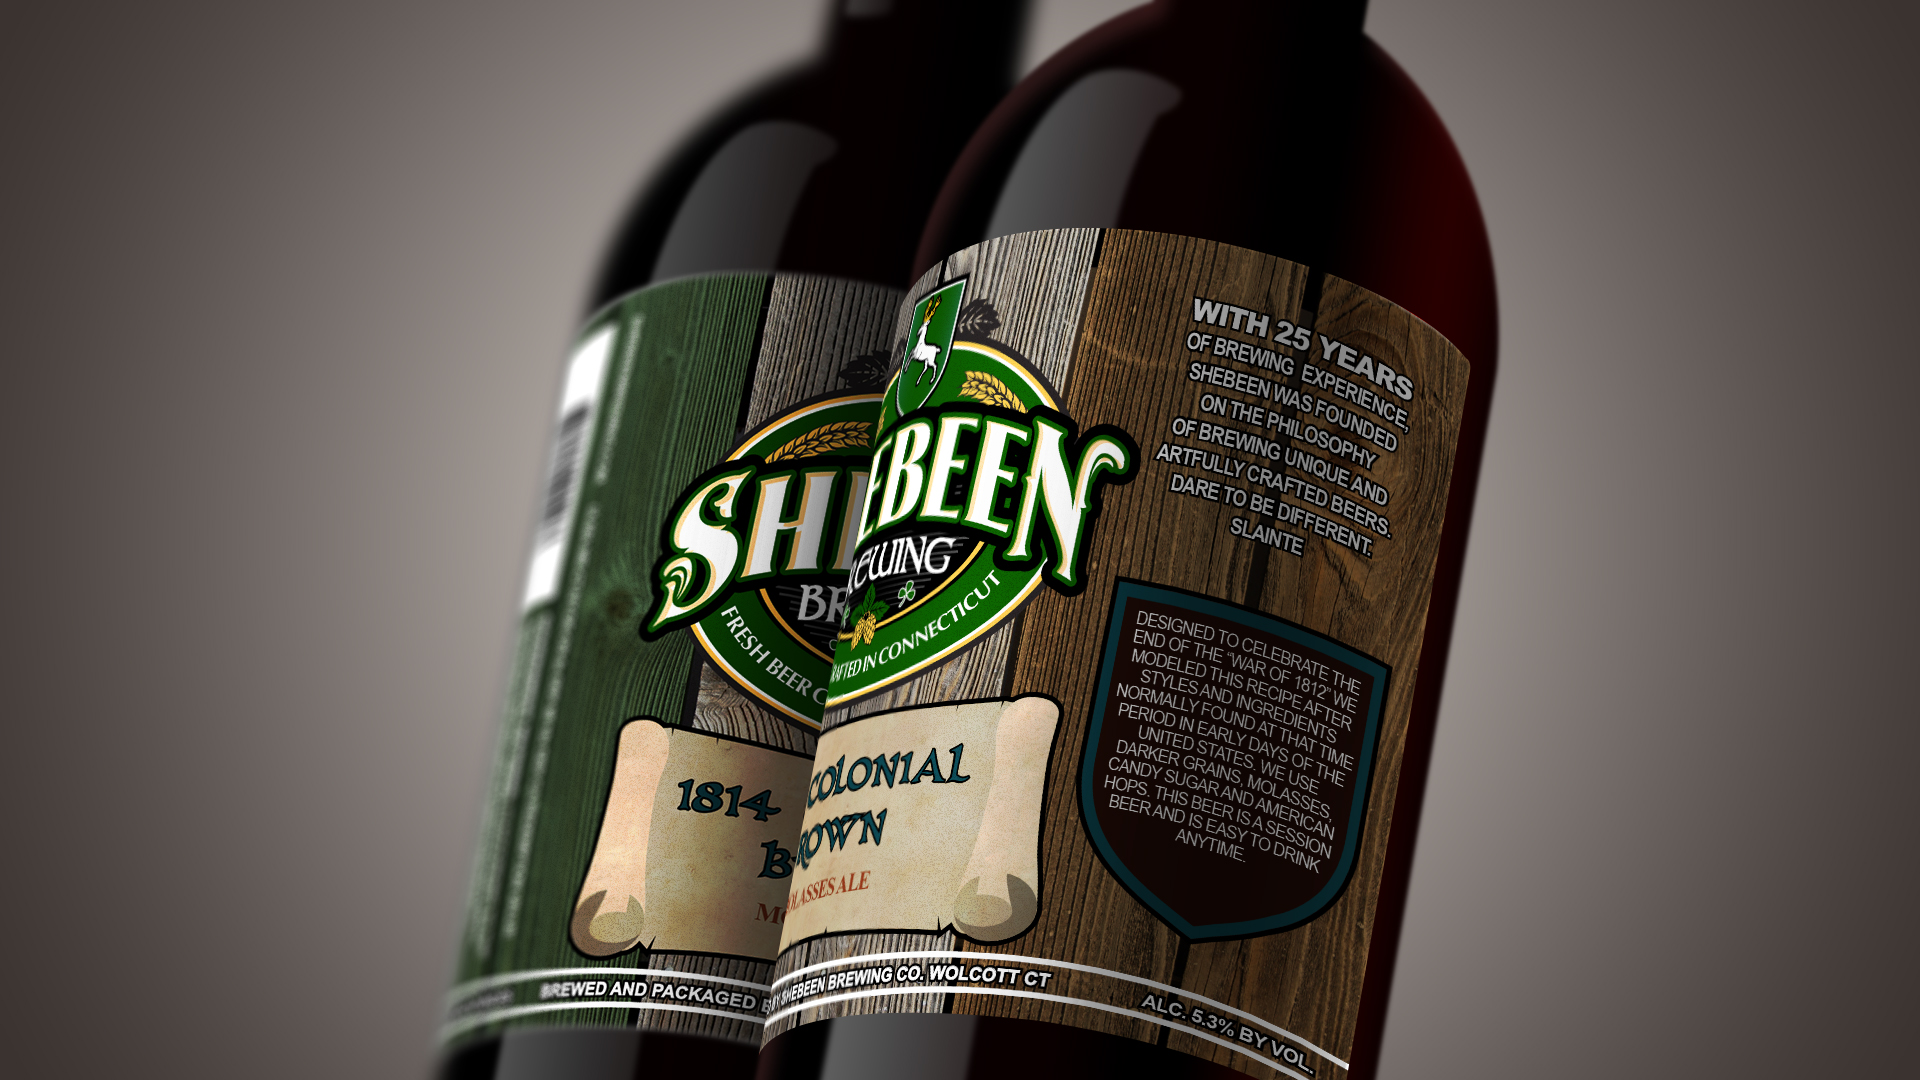 Bomber bottle label design: angled view